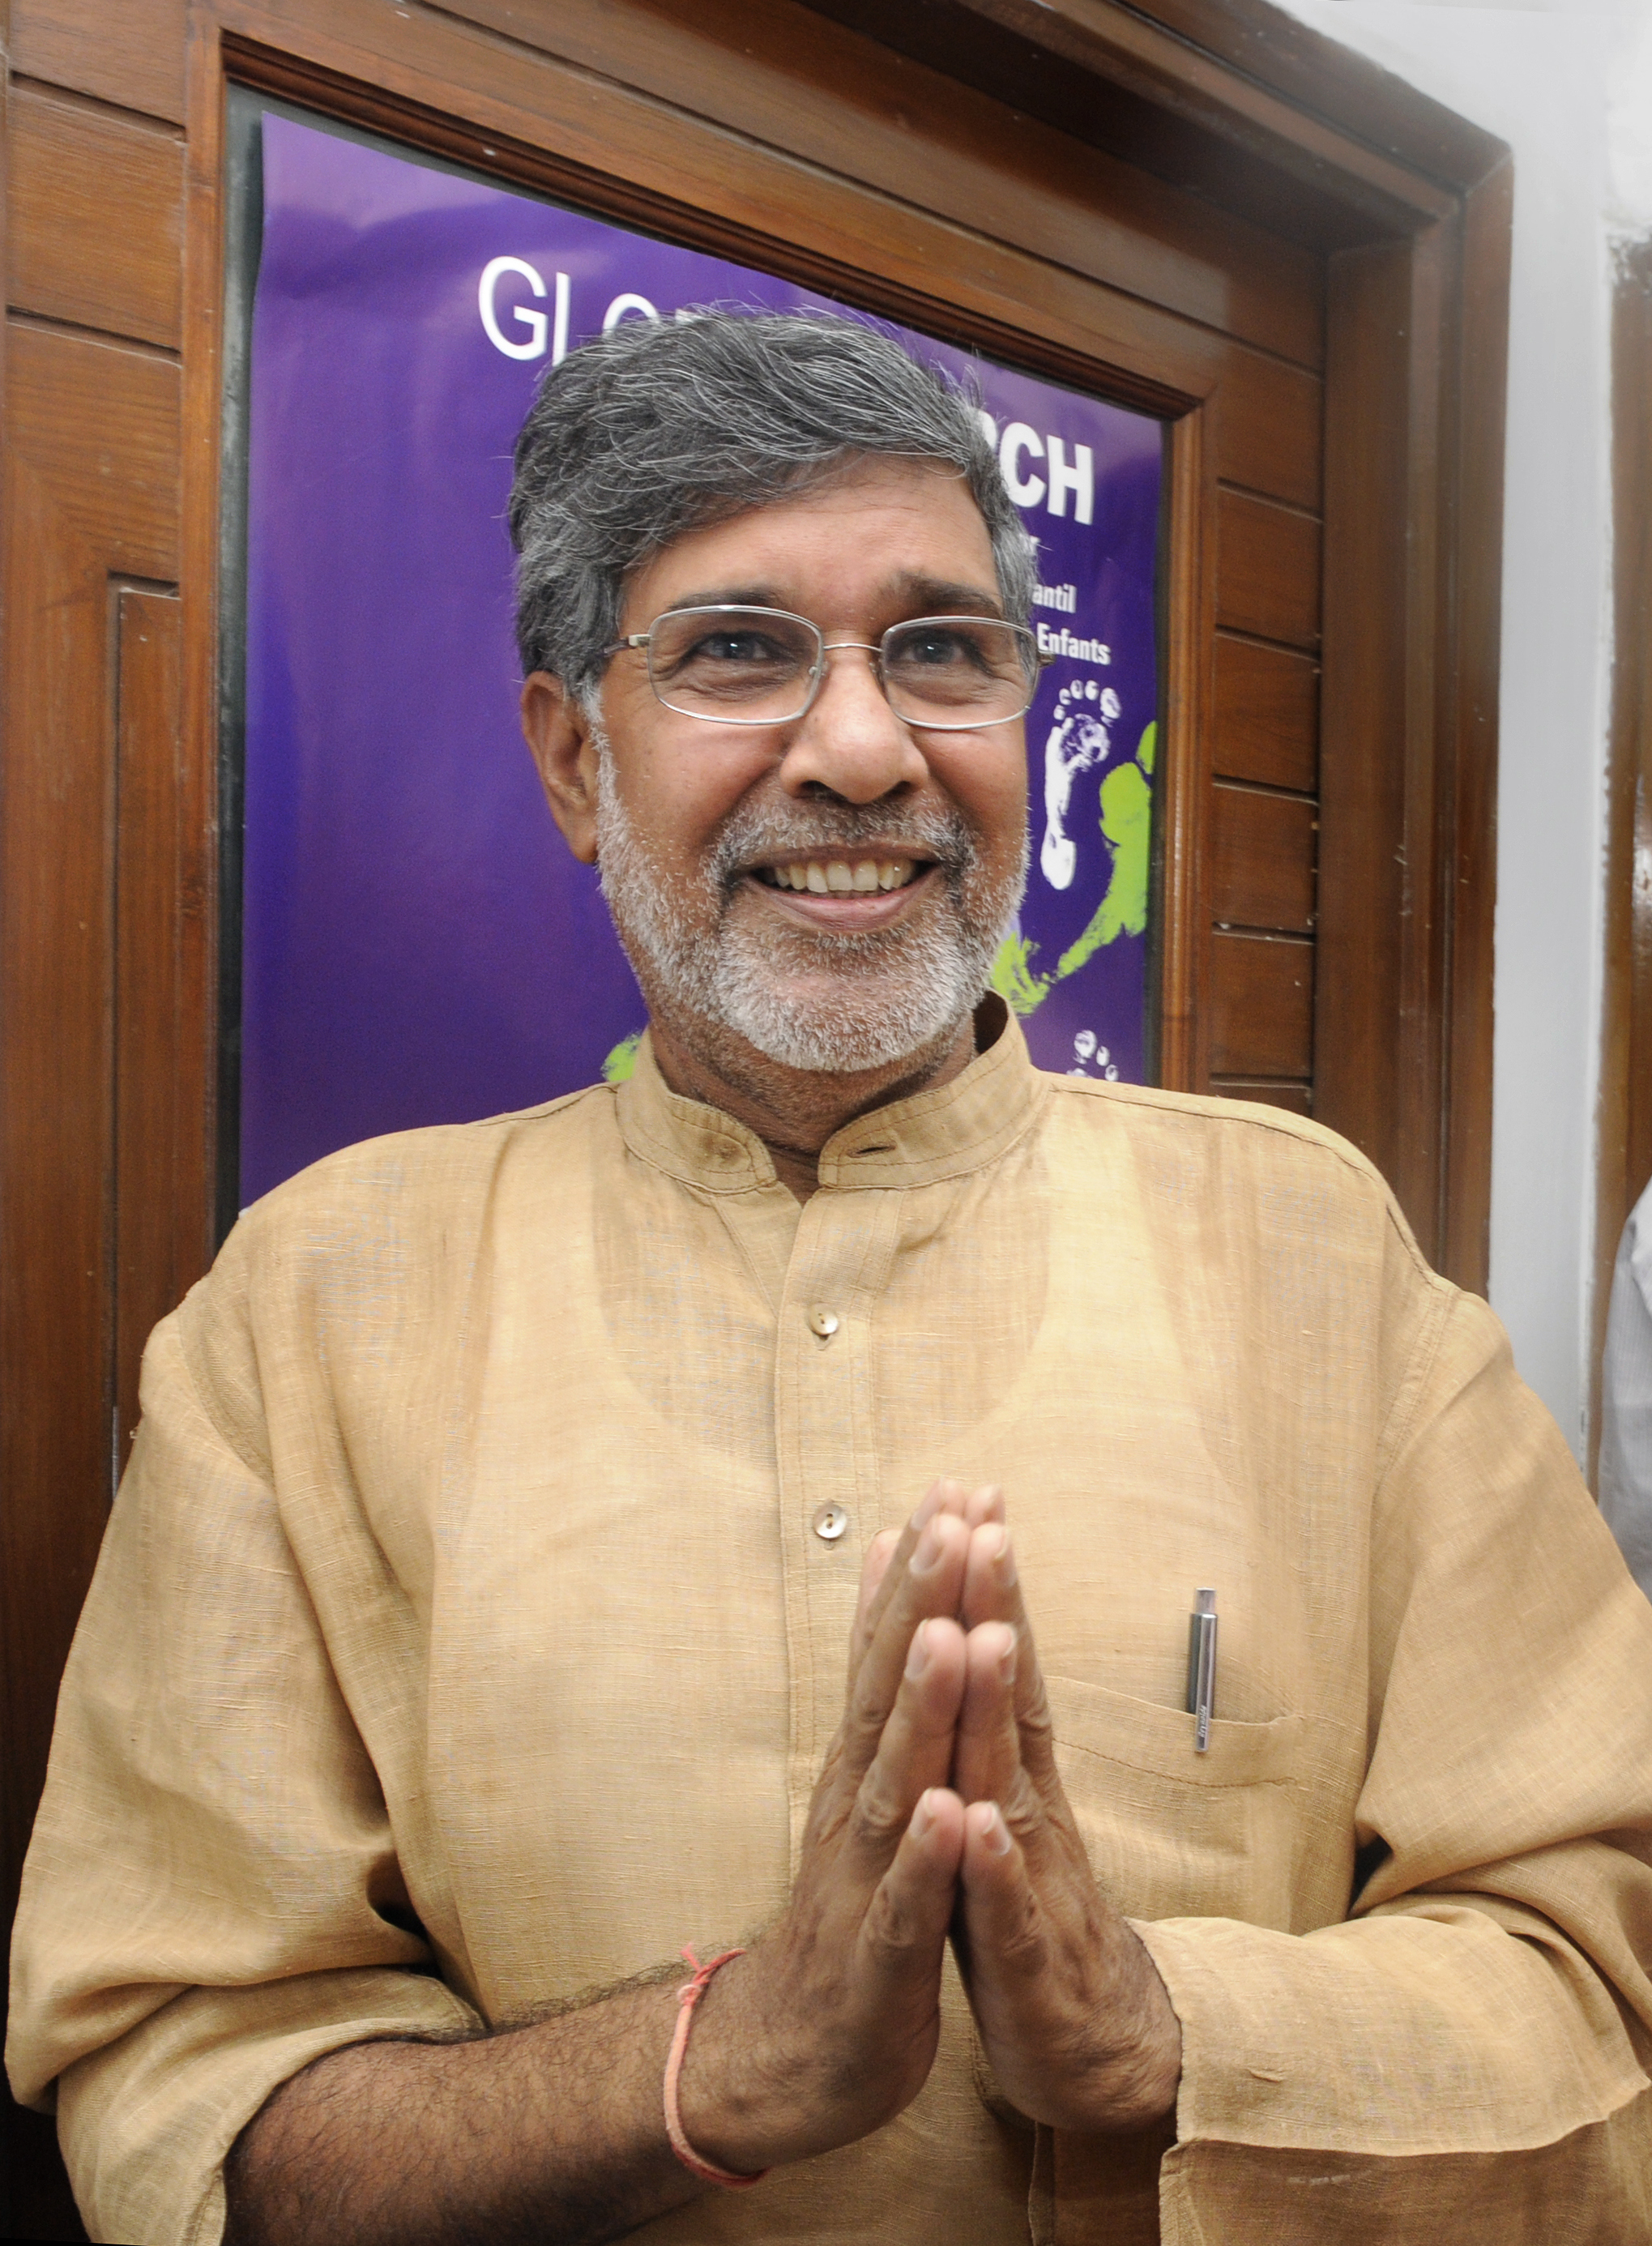 Indian childrens right activist and 2014 Nobel peace prize laureate Kailash Satyarthi greets media persons and well-wishers at his residence after the announcement of prize on October 10, 2014 in New Delhi, India.